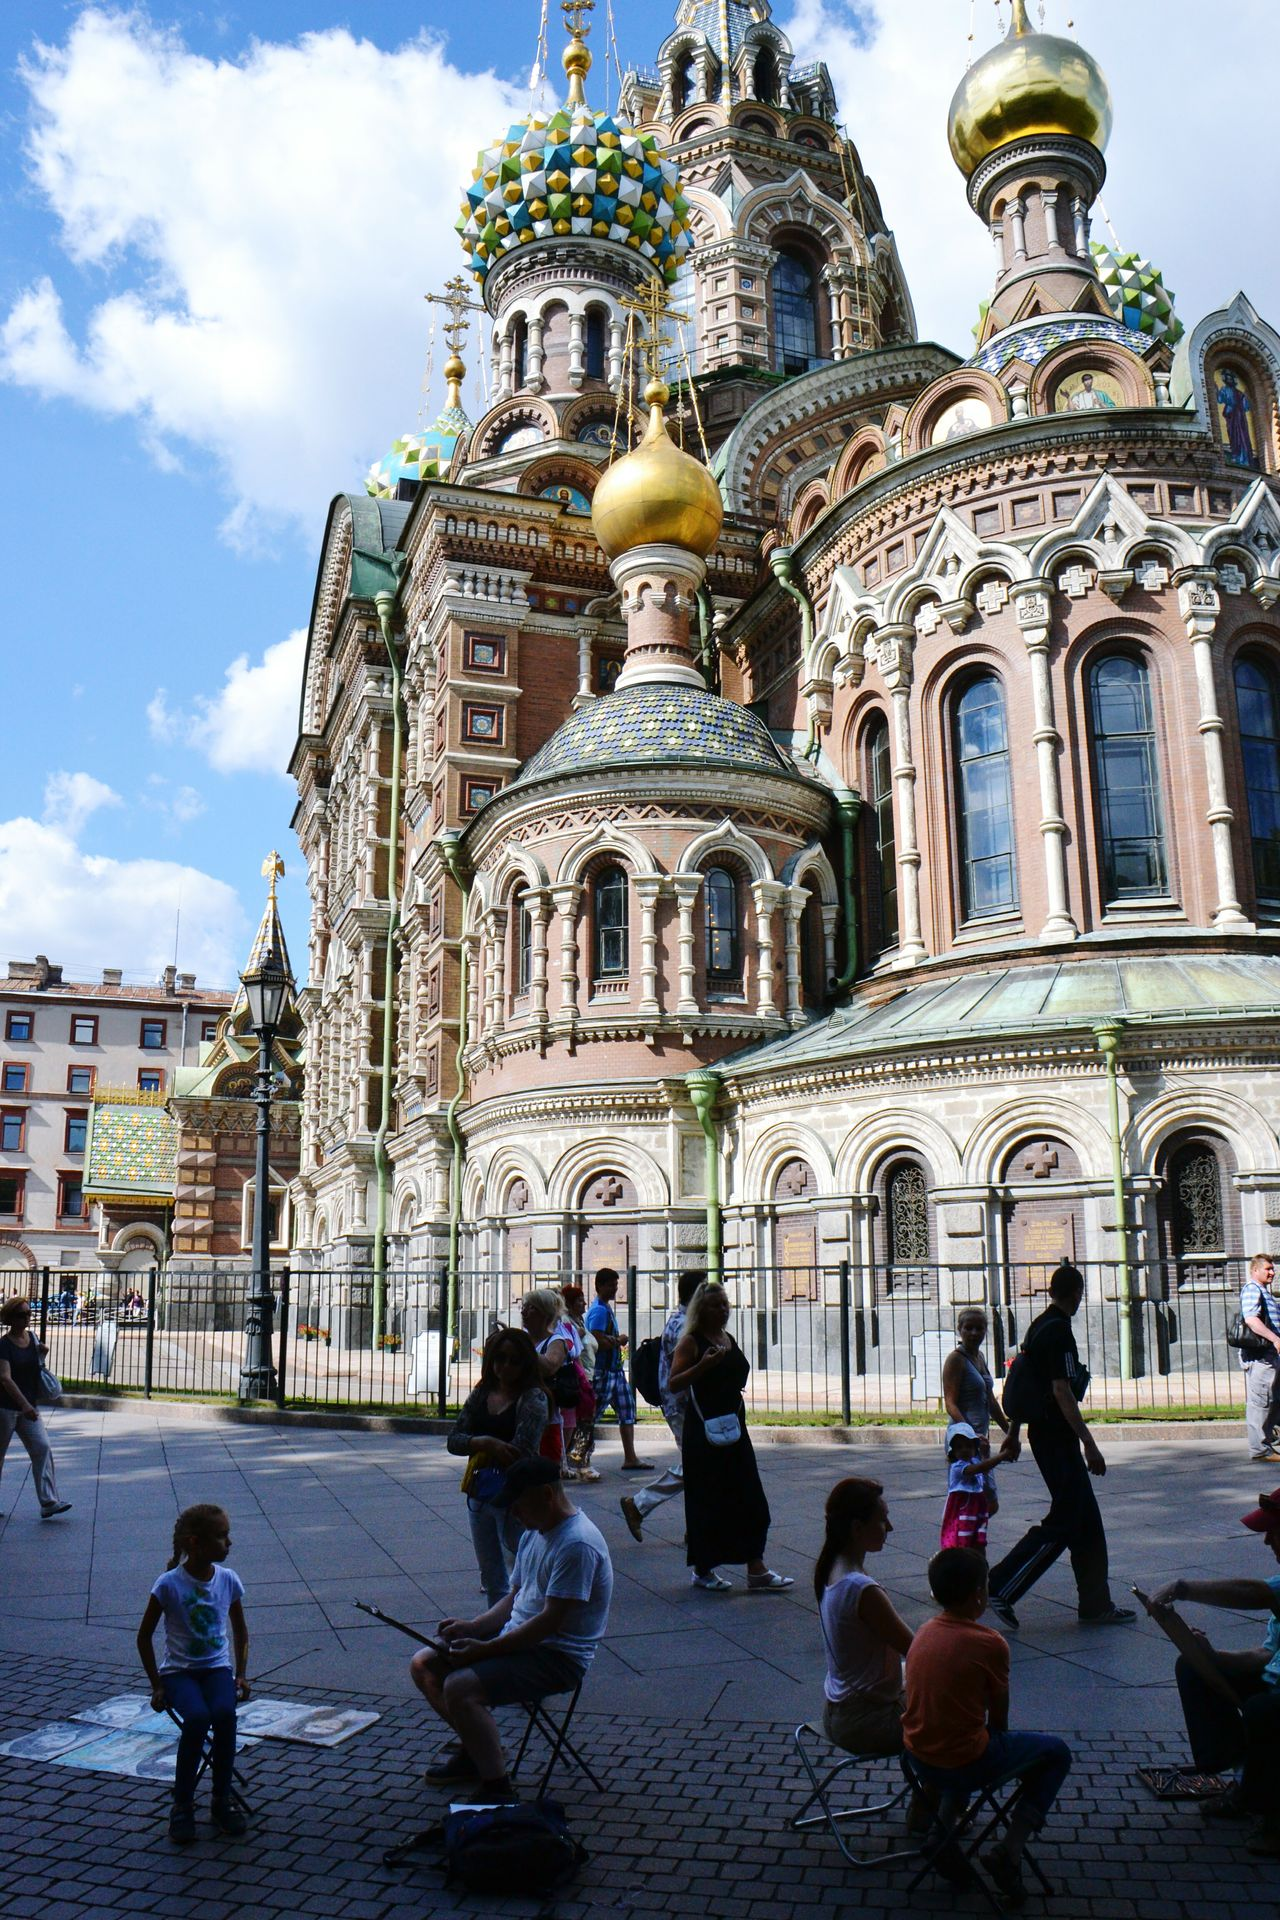 Church of Savior on the Blood in St. Petersburg, Russia; with sketch artists doing portraits in foreground. Religion Architecture Travel Destinations Spirituality Place Of Worship Tourism Travel Vertical Building Exterior Built Structure Dome Large Group Of People Gold Colored Sky Outdoors Façade Men